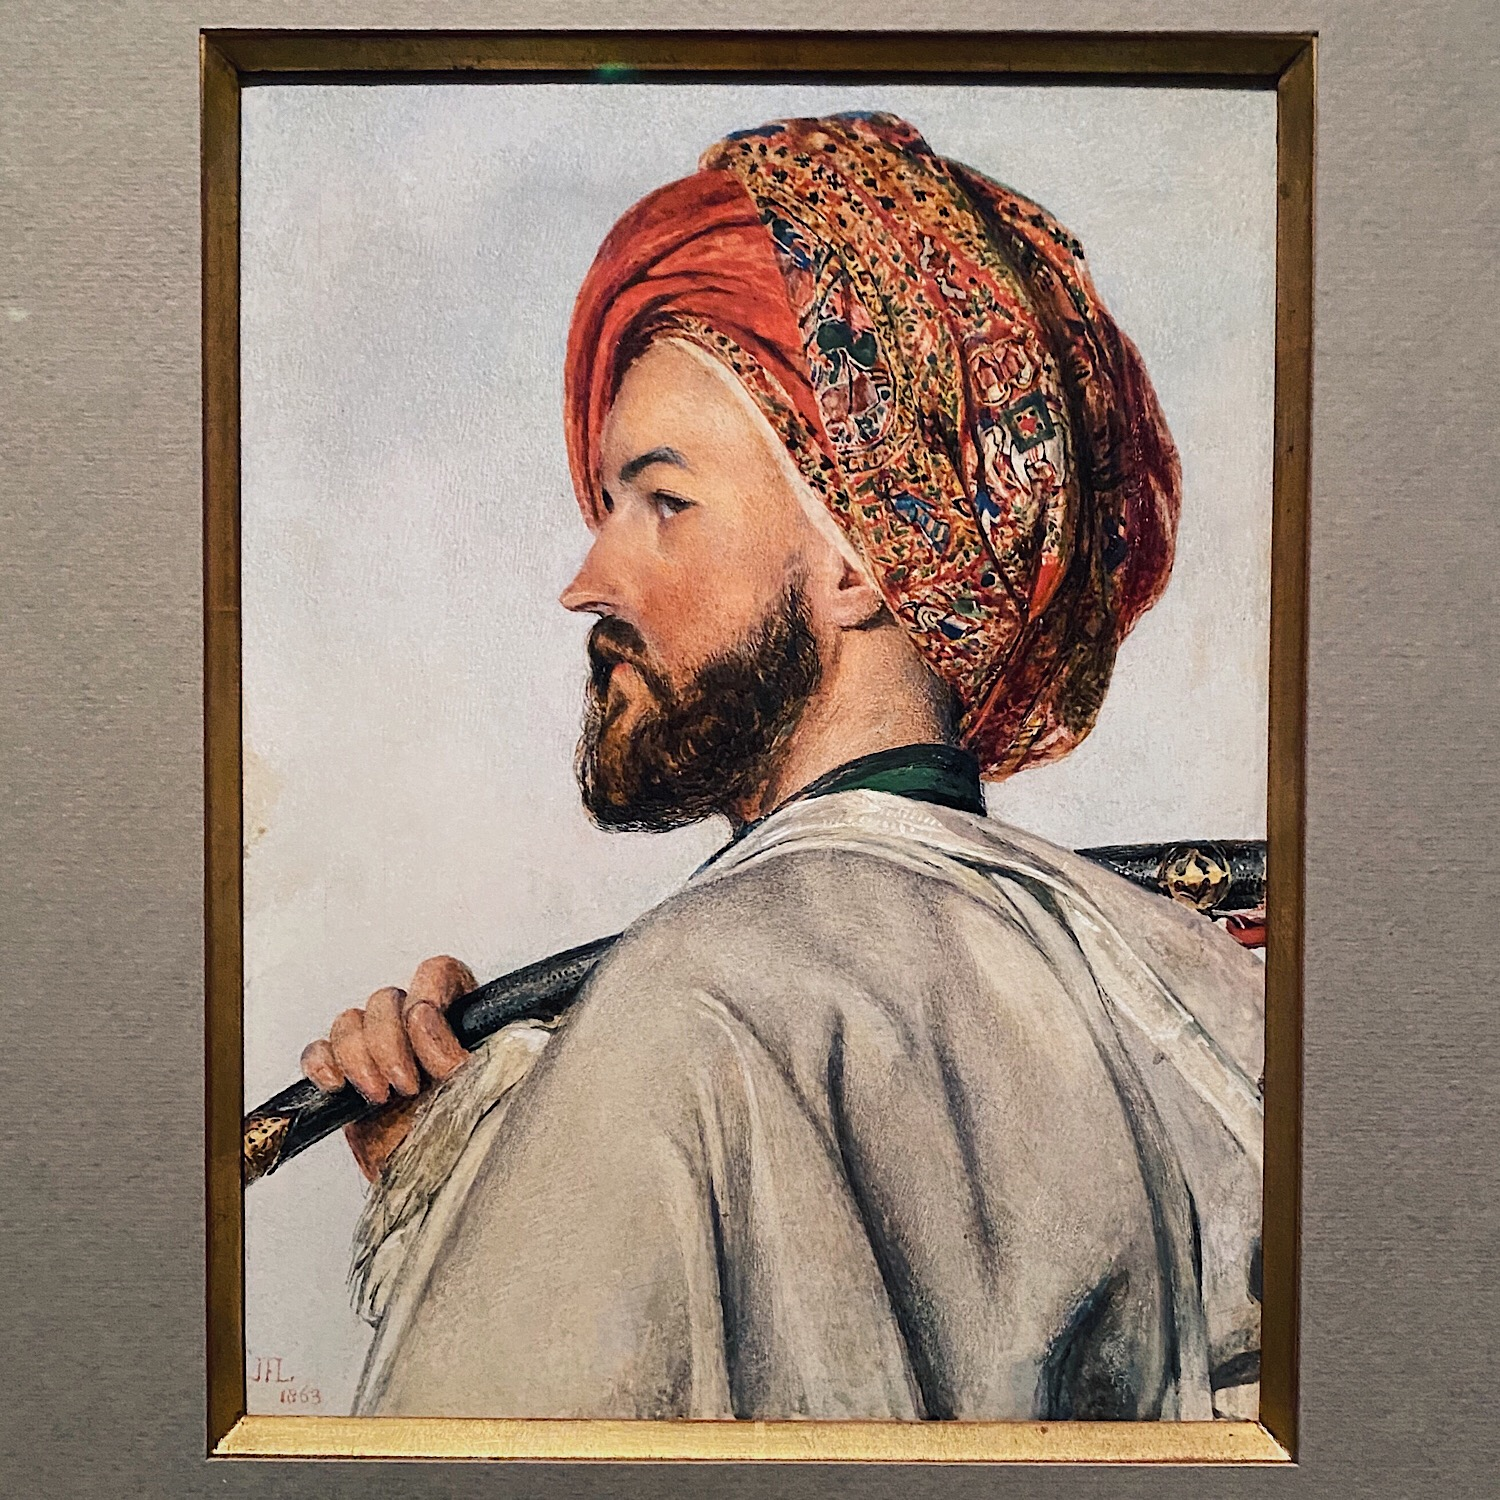 turban style, men fashion history, fashion history, men fashion blog, lucifer wardrobe, john frederick lewis,